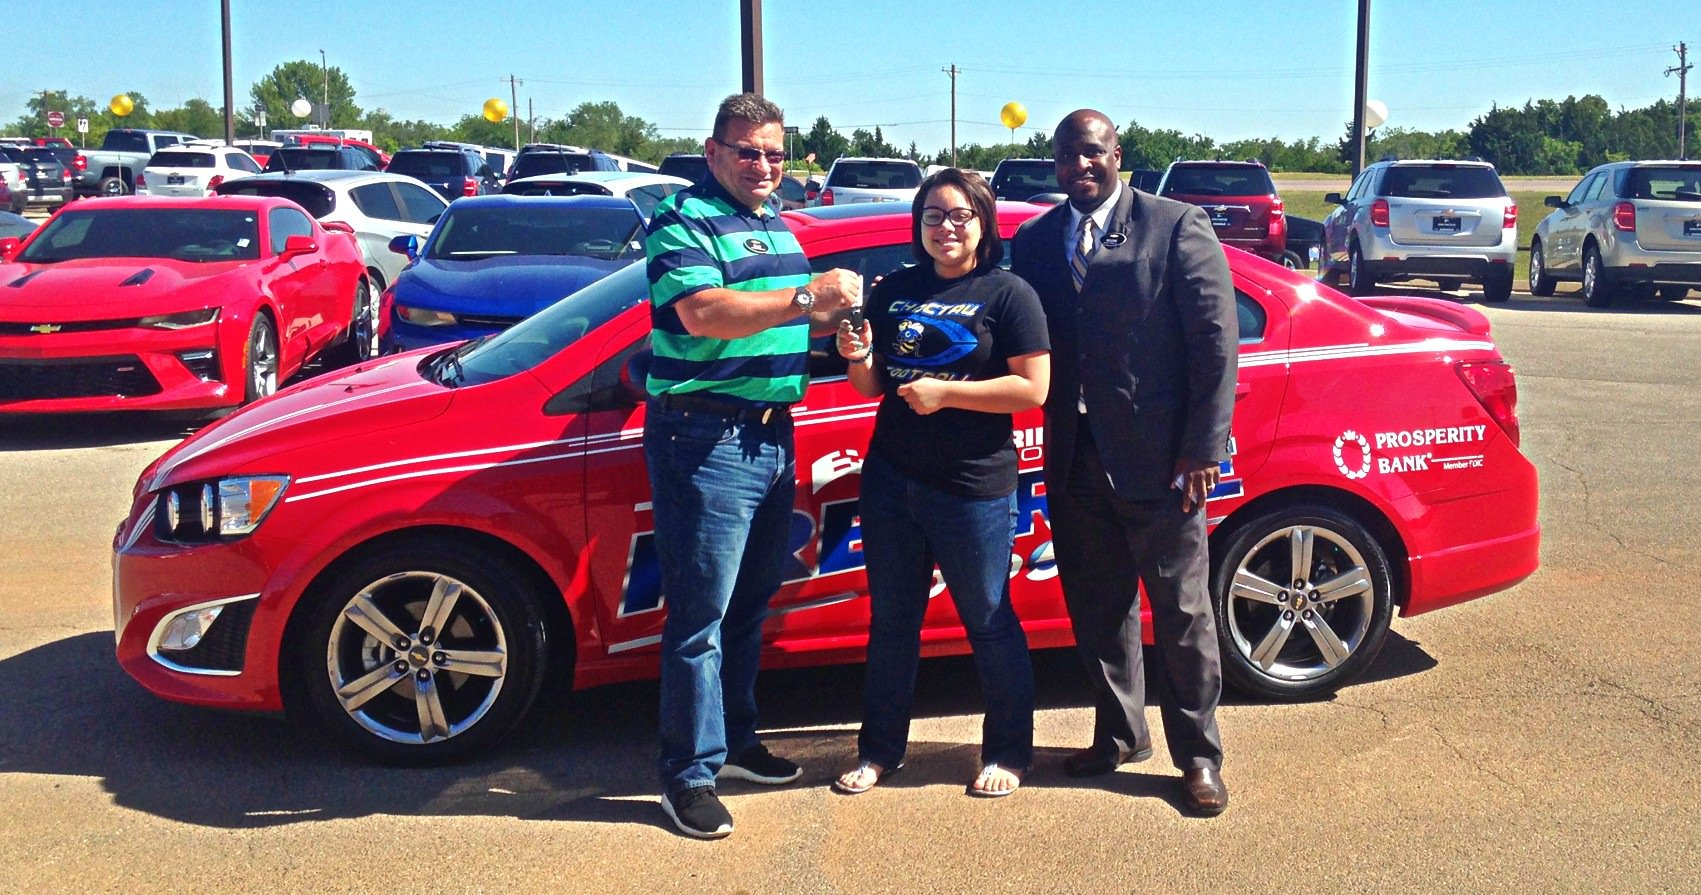 eskridge chevrolet on twitter we re proud to announce lila beasley of choctaw hs as our 2016 eskridge auto free ride winner congrats lila twitter